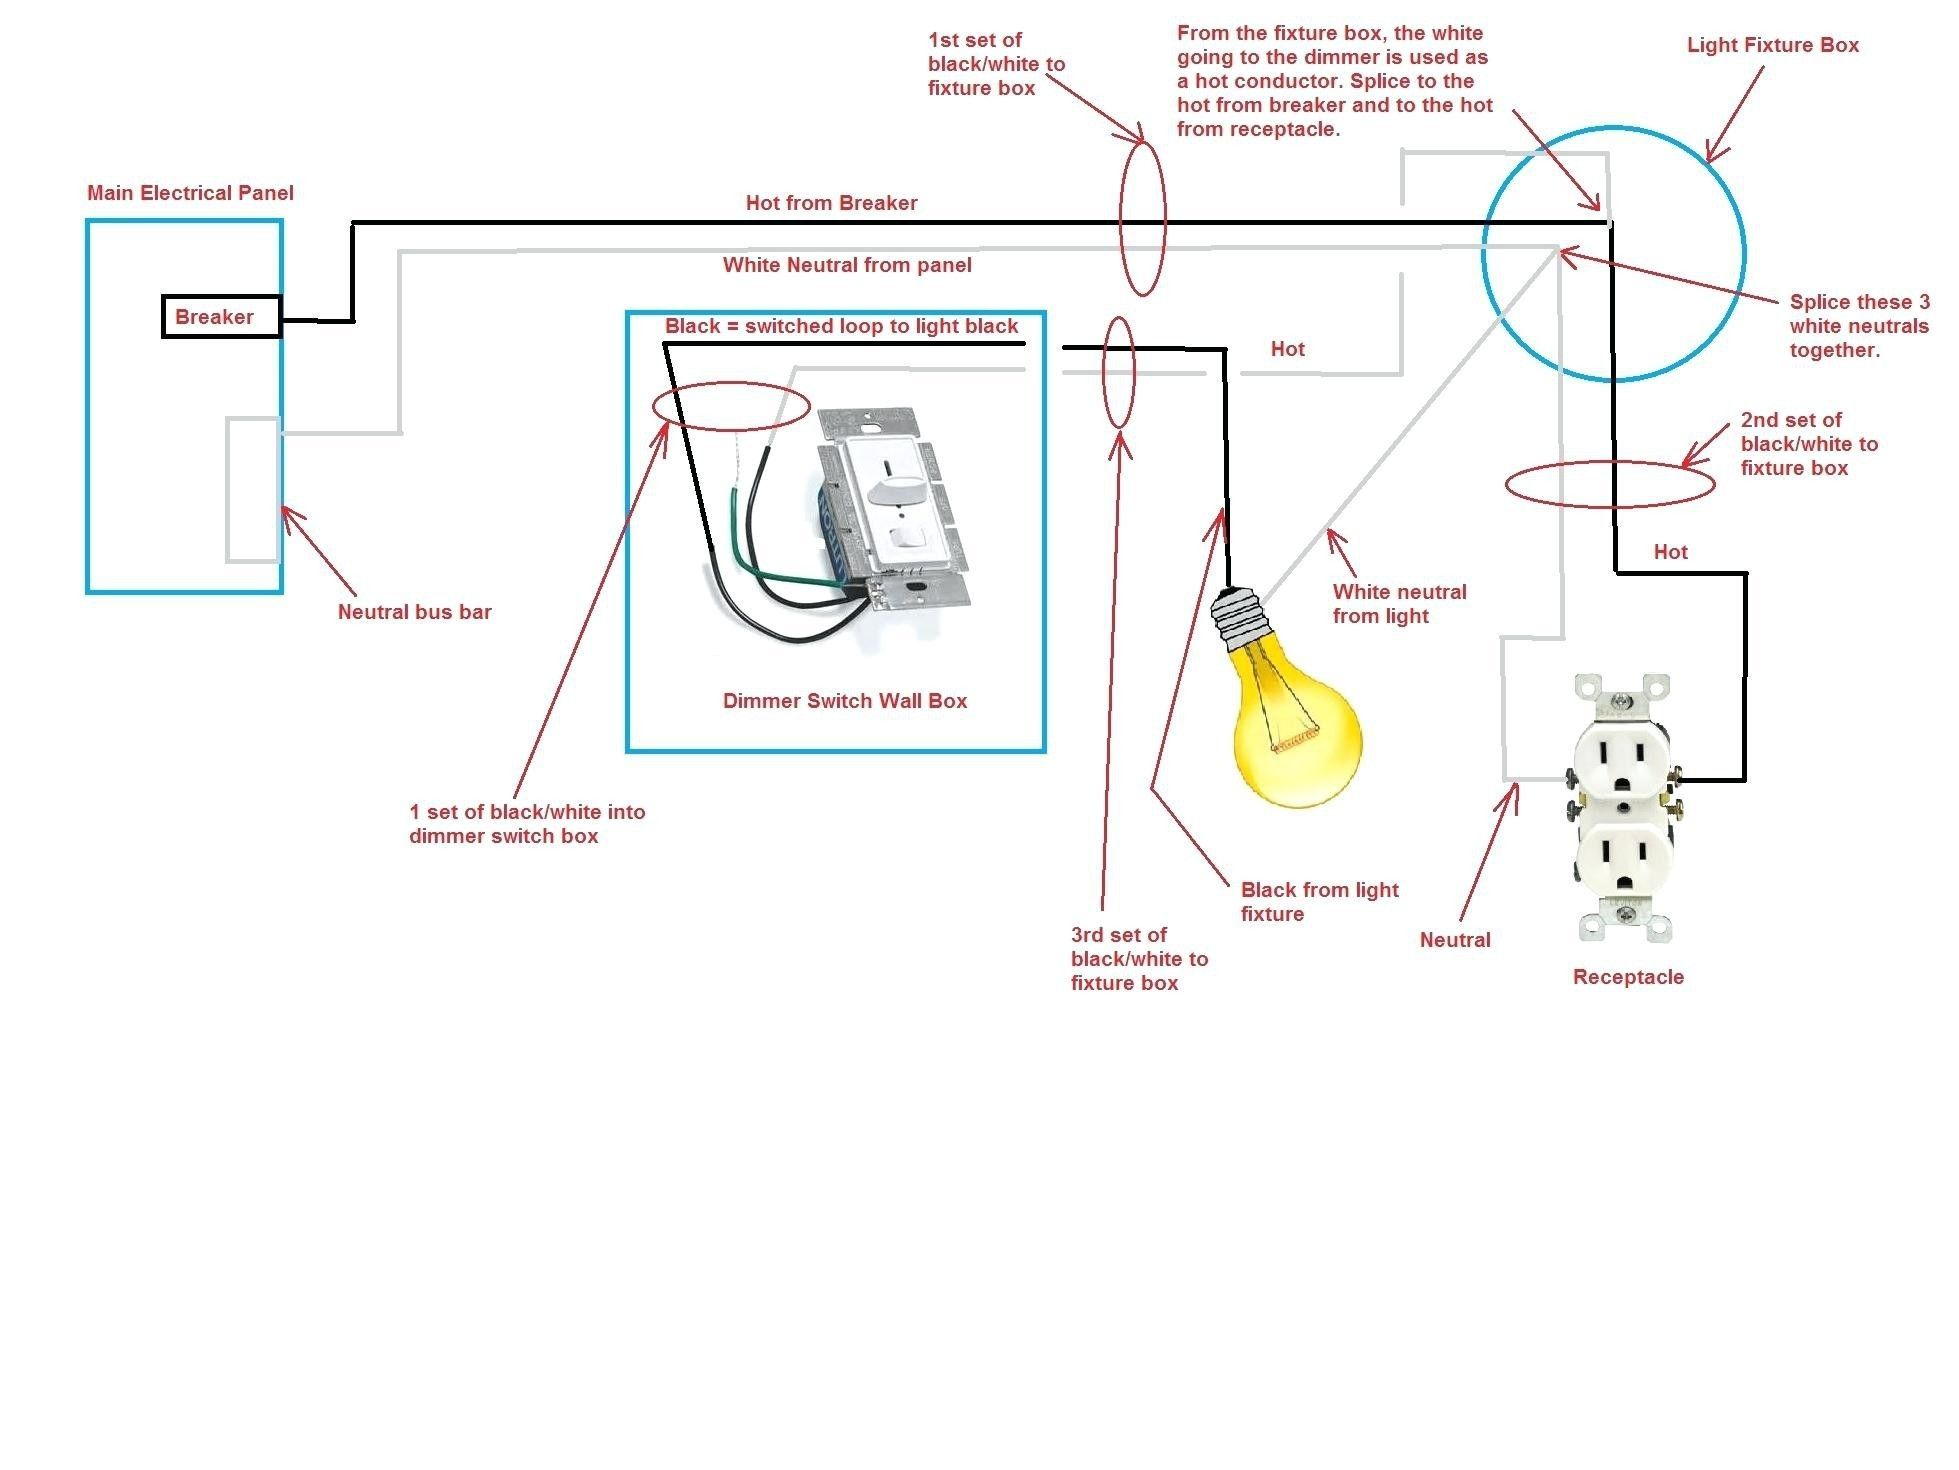 New Wiring Diagram Gfci Breaker Diagram Diagramsample Diagramtemplate Wiringdiagram Diagramchart W Light Switch Wiring Circuit Diagram Wire Light Fixture